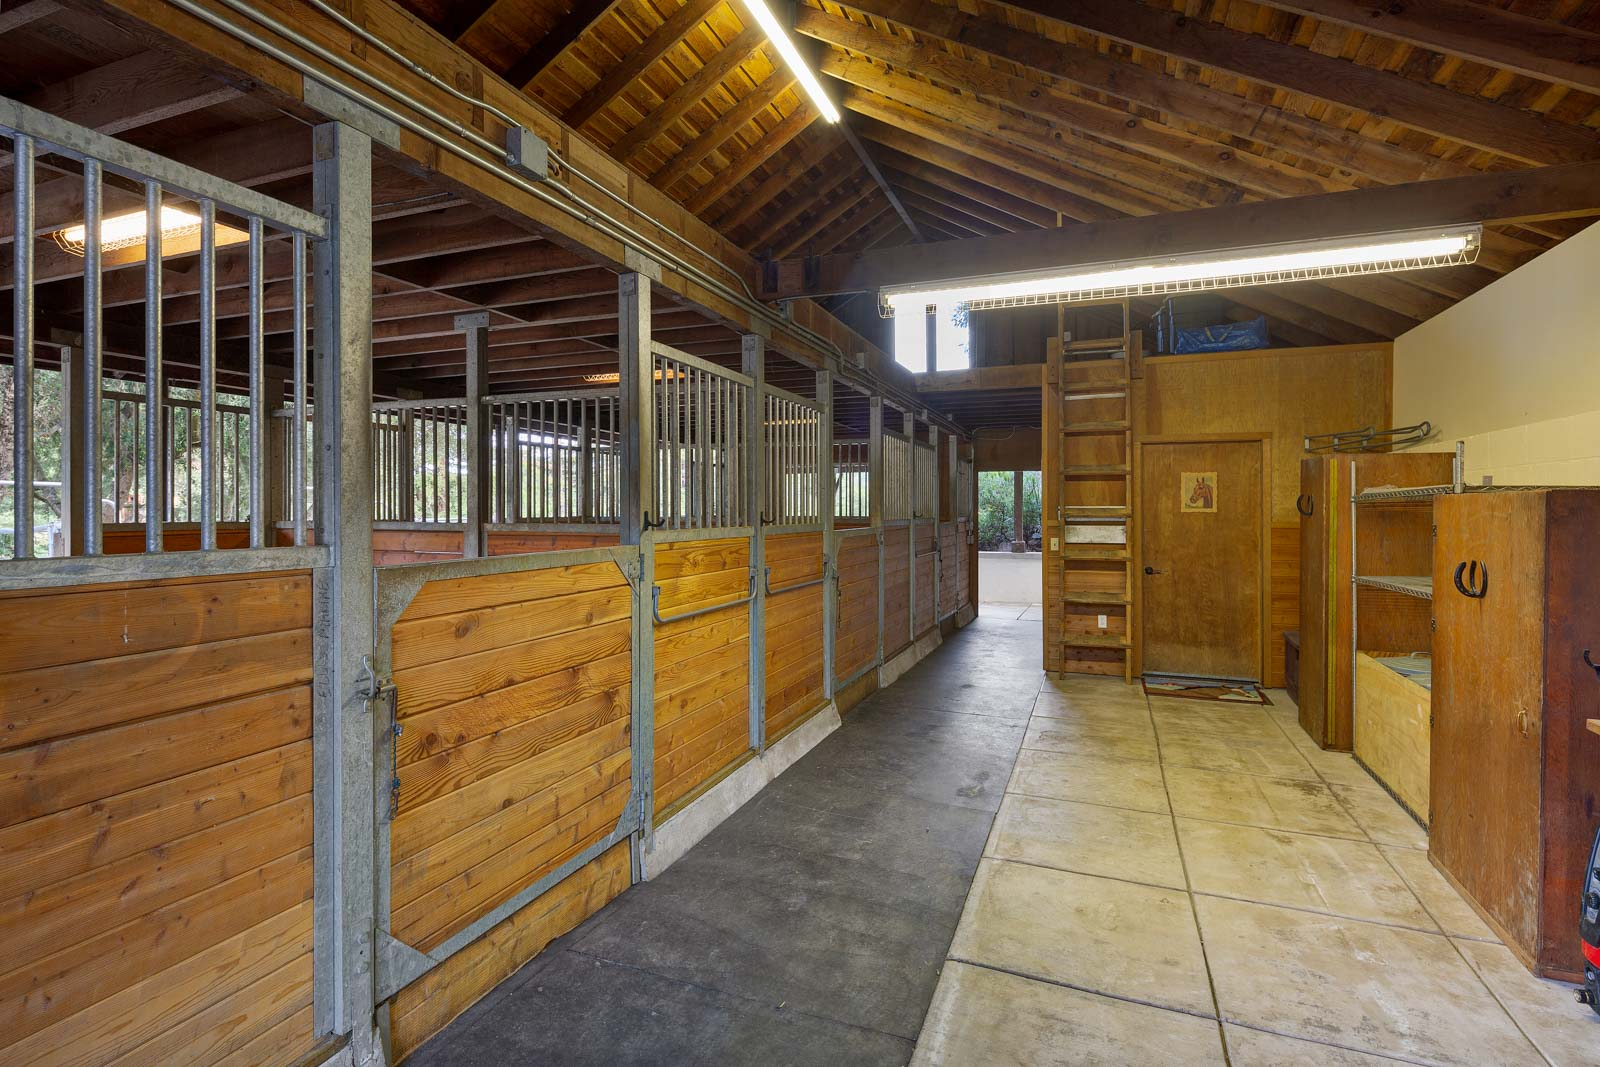 The equestrian facilities are a major draw here. The dressage arena is